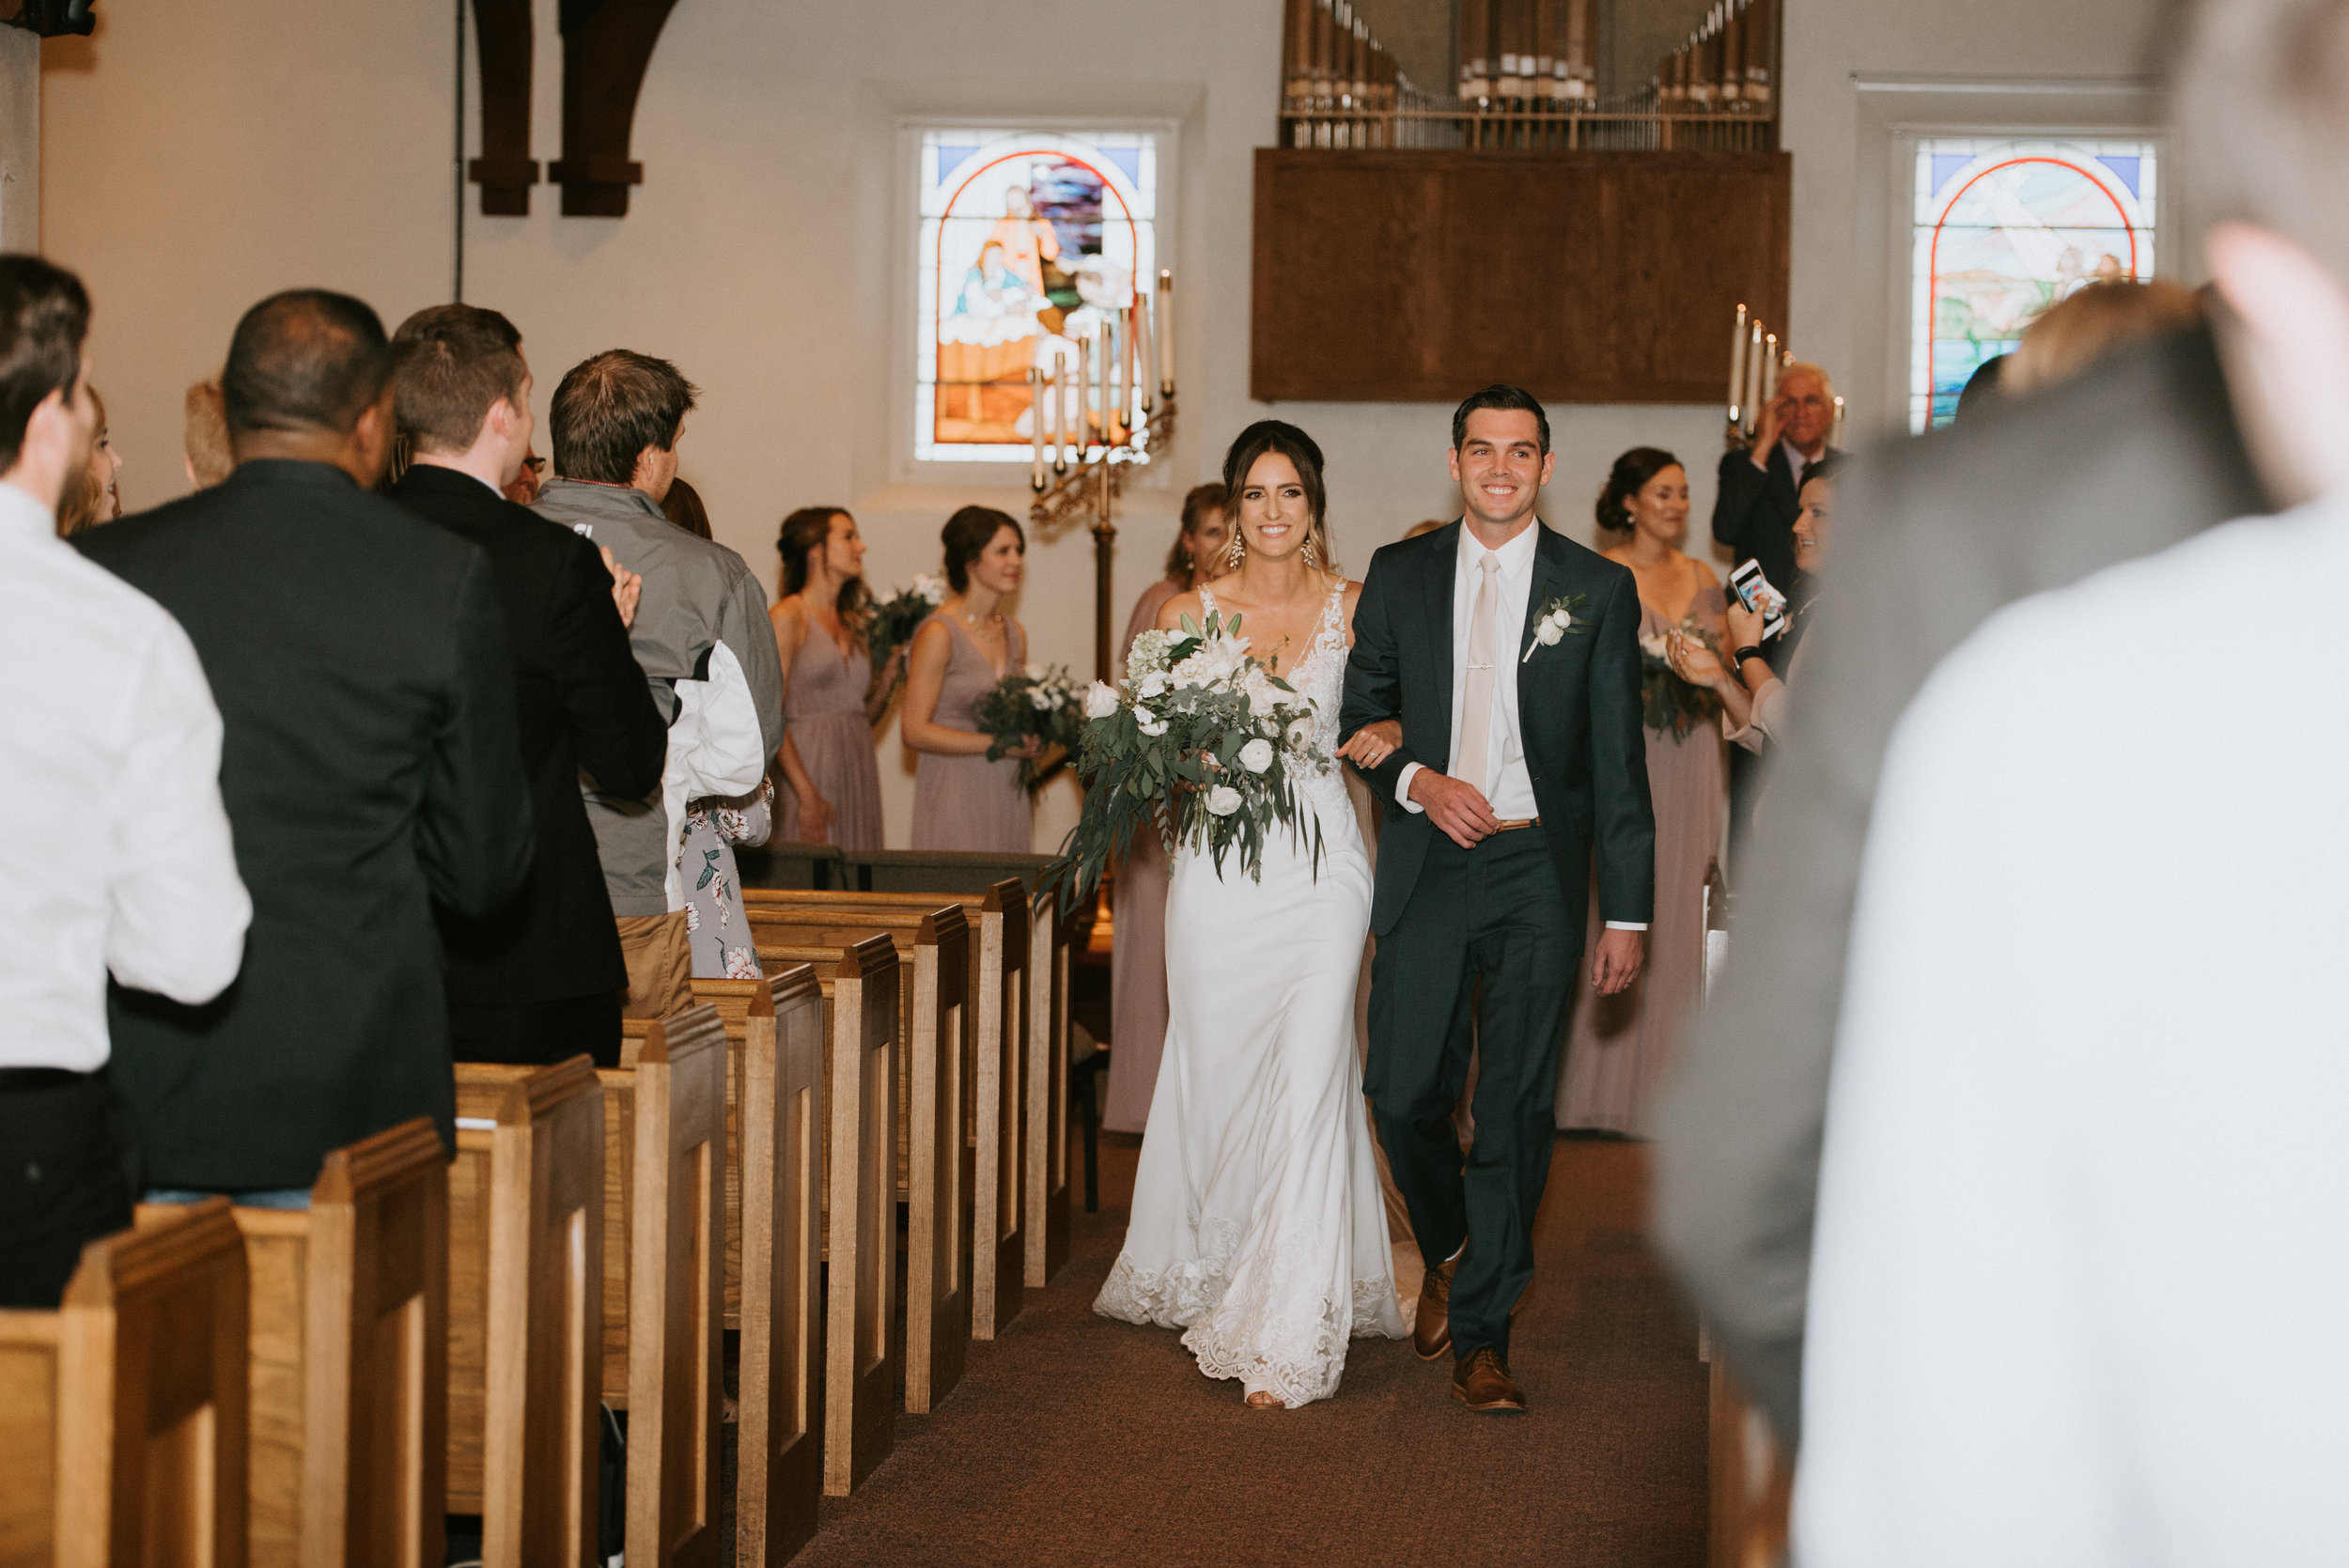 Reardon-ceremony-75.jpg